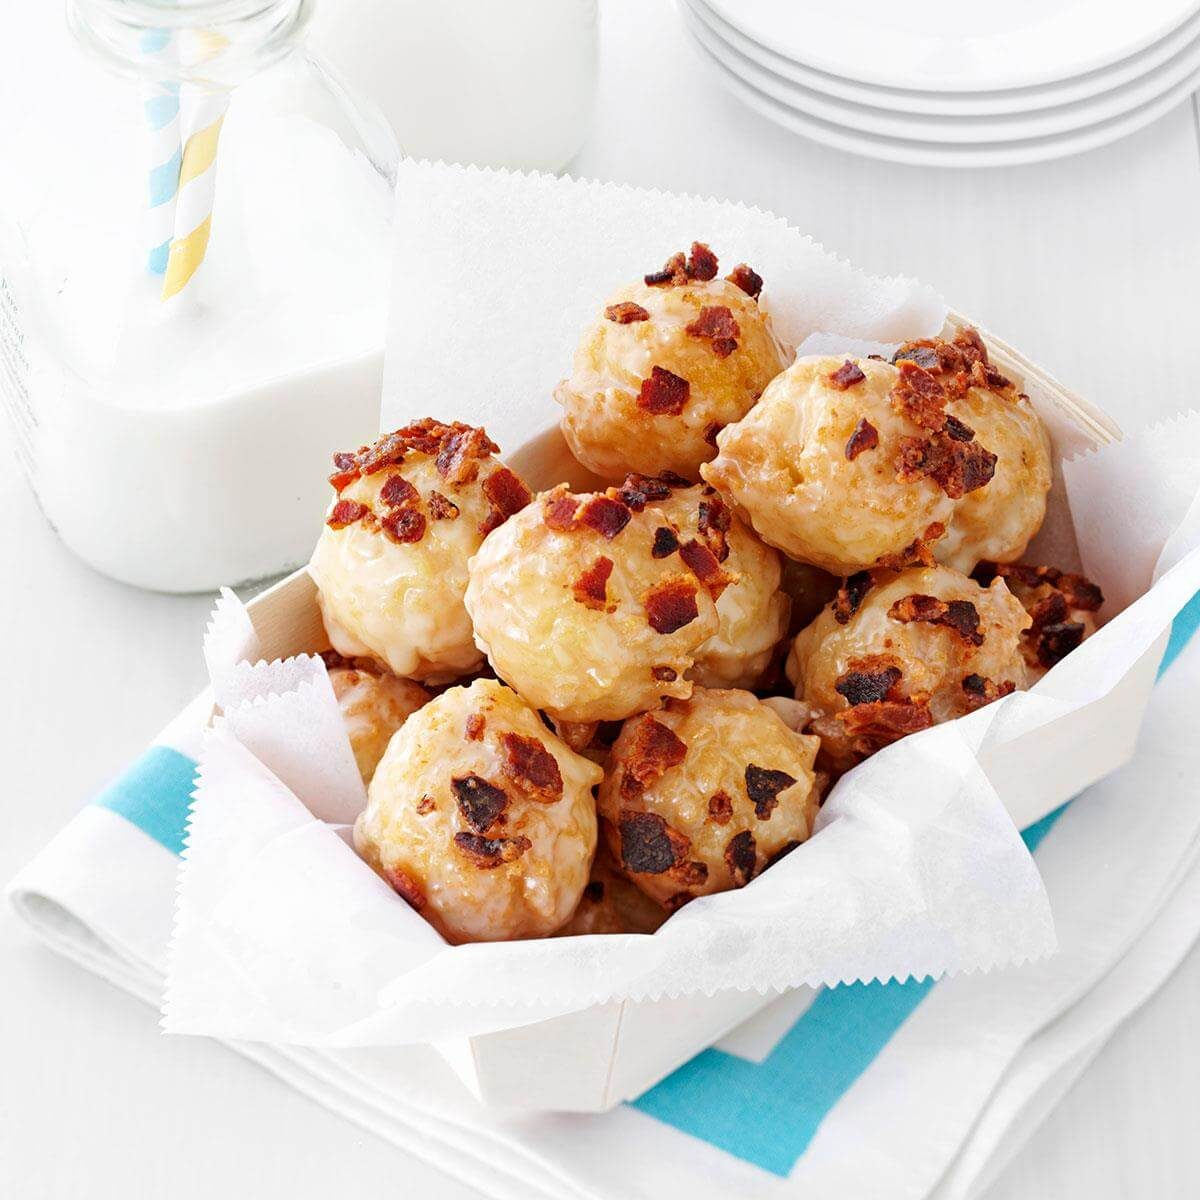 Maple-Bacon Doughnut Bites